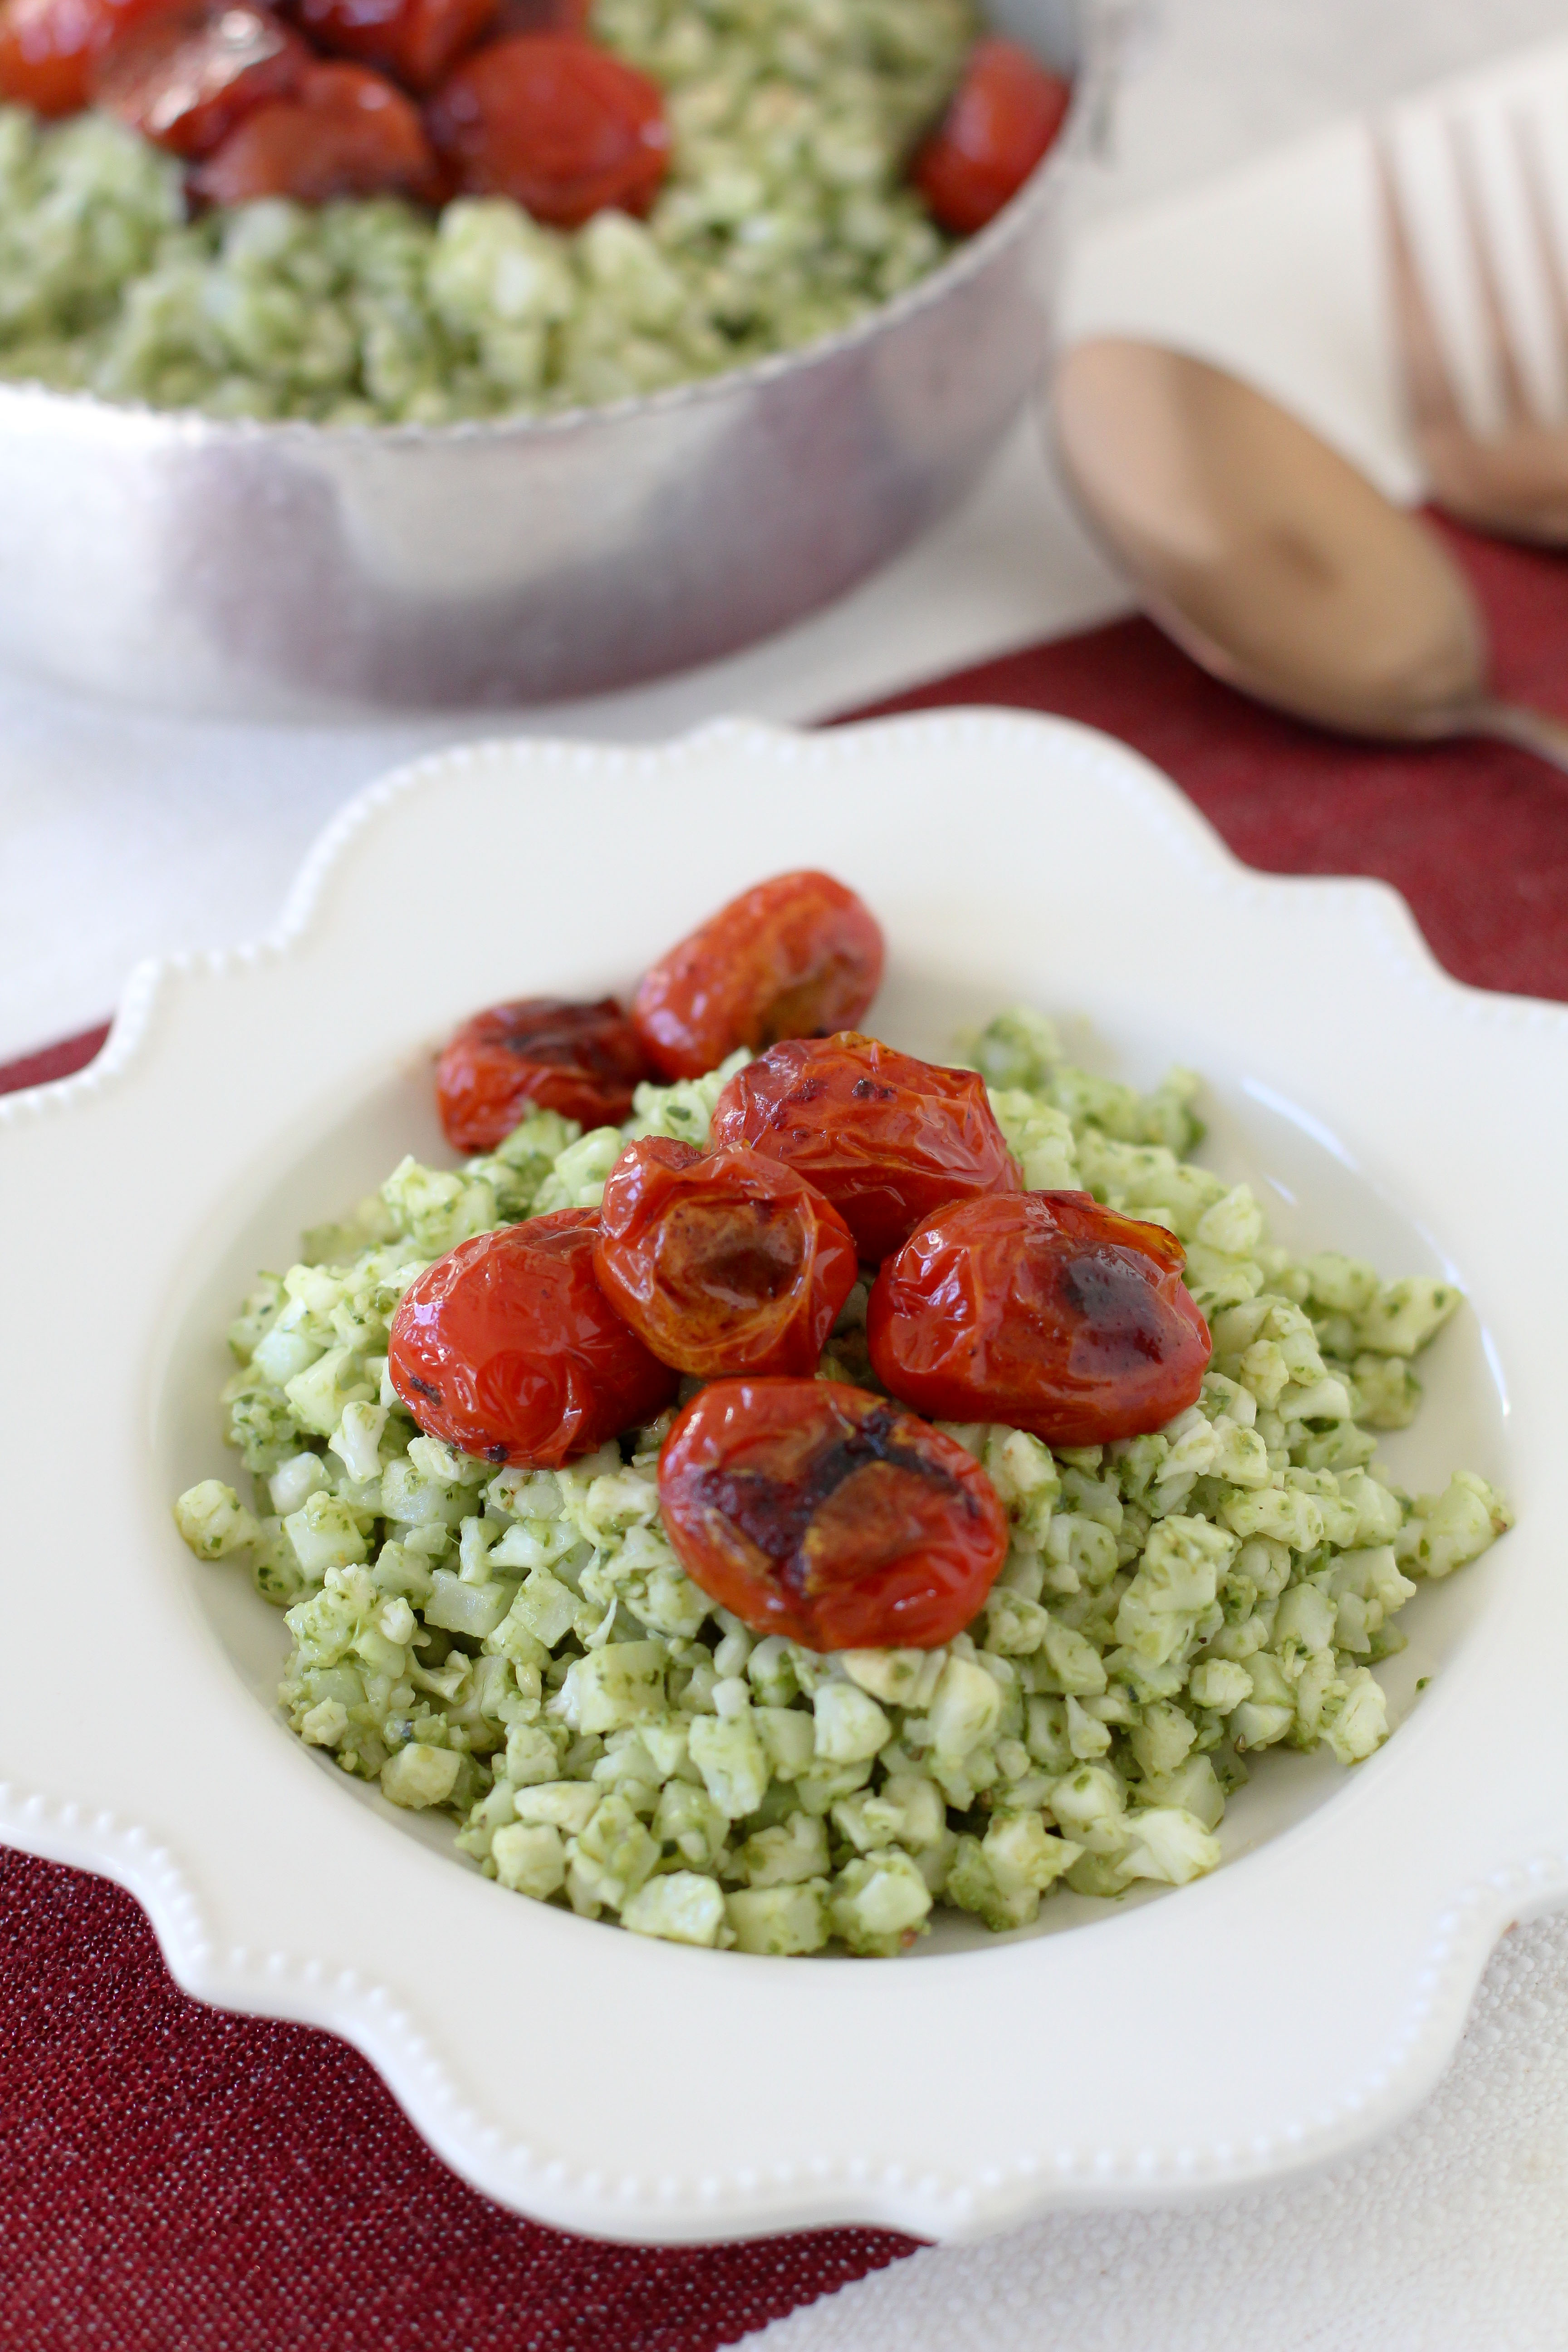 Pesto cauliflower rice blistered tomatoes the whole smiths an easy to make pesto cauliflower rice recipe from the whole smiths paleo forumfinder Gallery